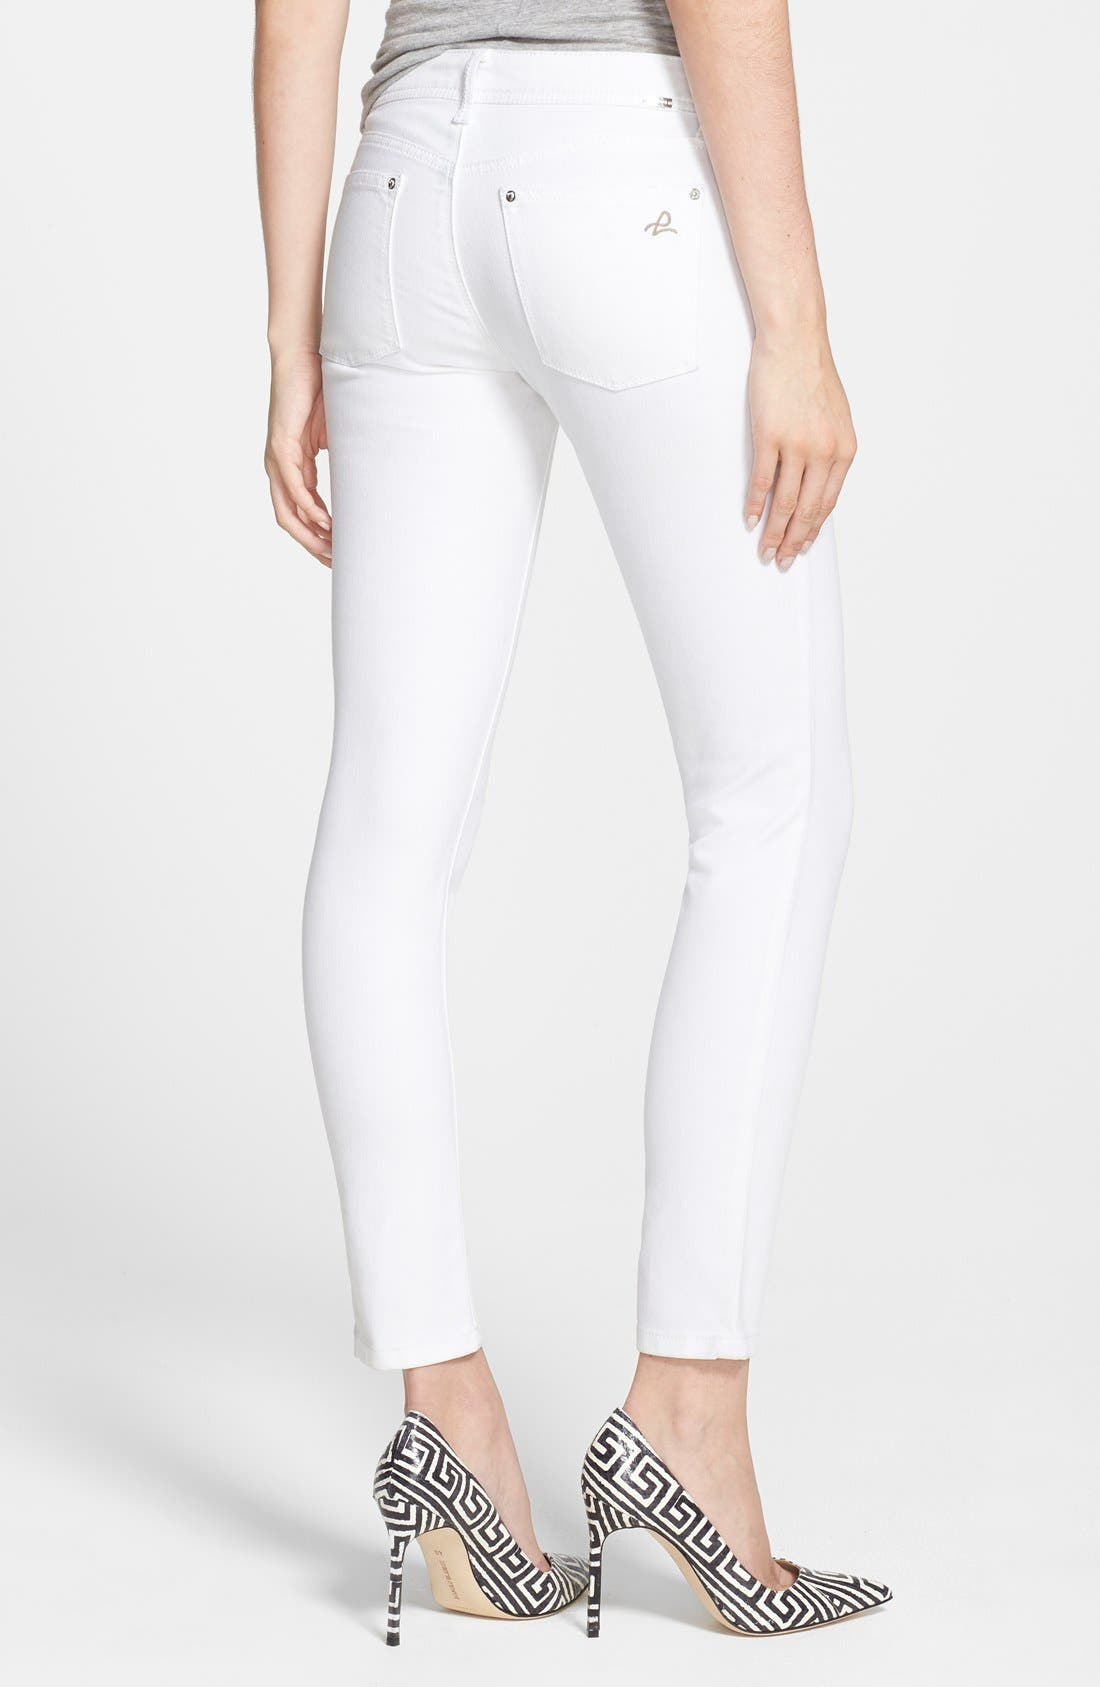 Alternate Image 2  - DL1961 'Emma' Power Legging Jeans (Milk)